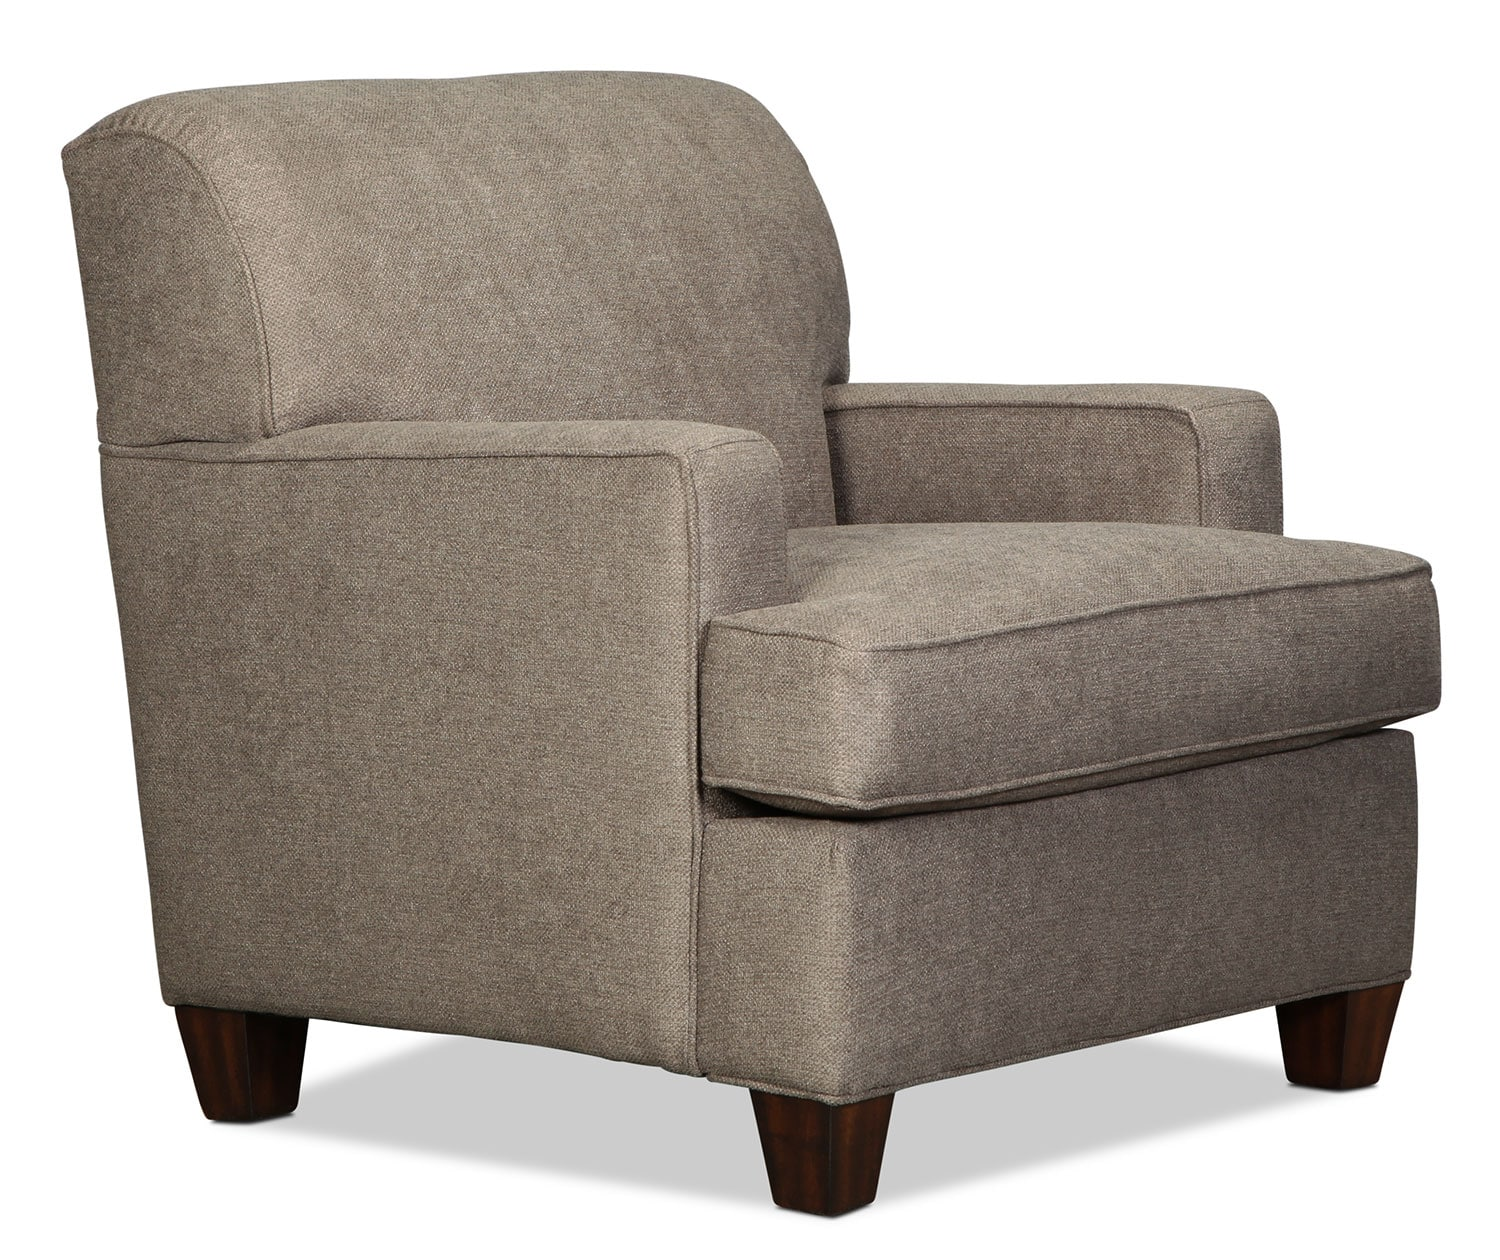 Lonsdale chair tan levin furniture for Levin furniture living room chairs